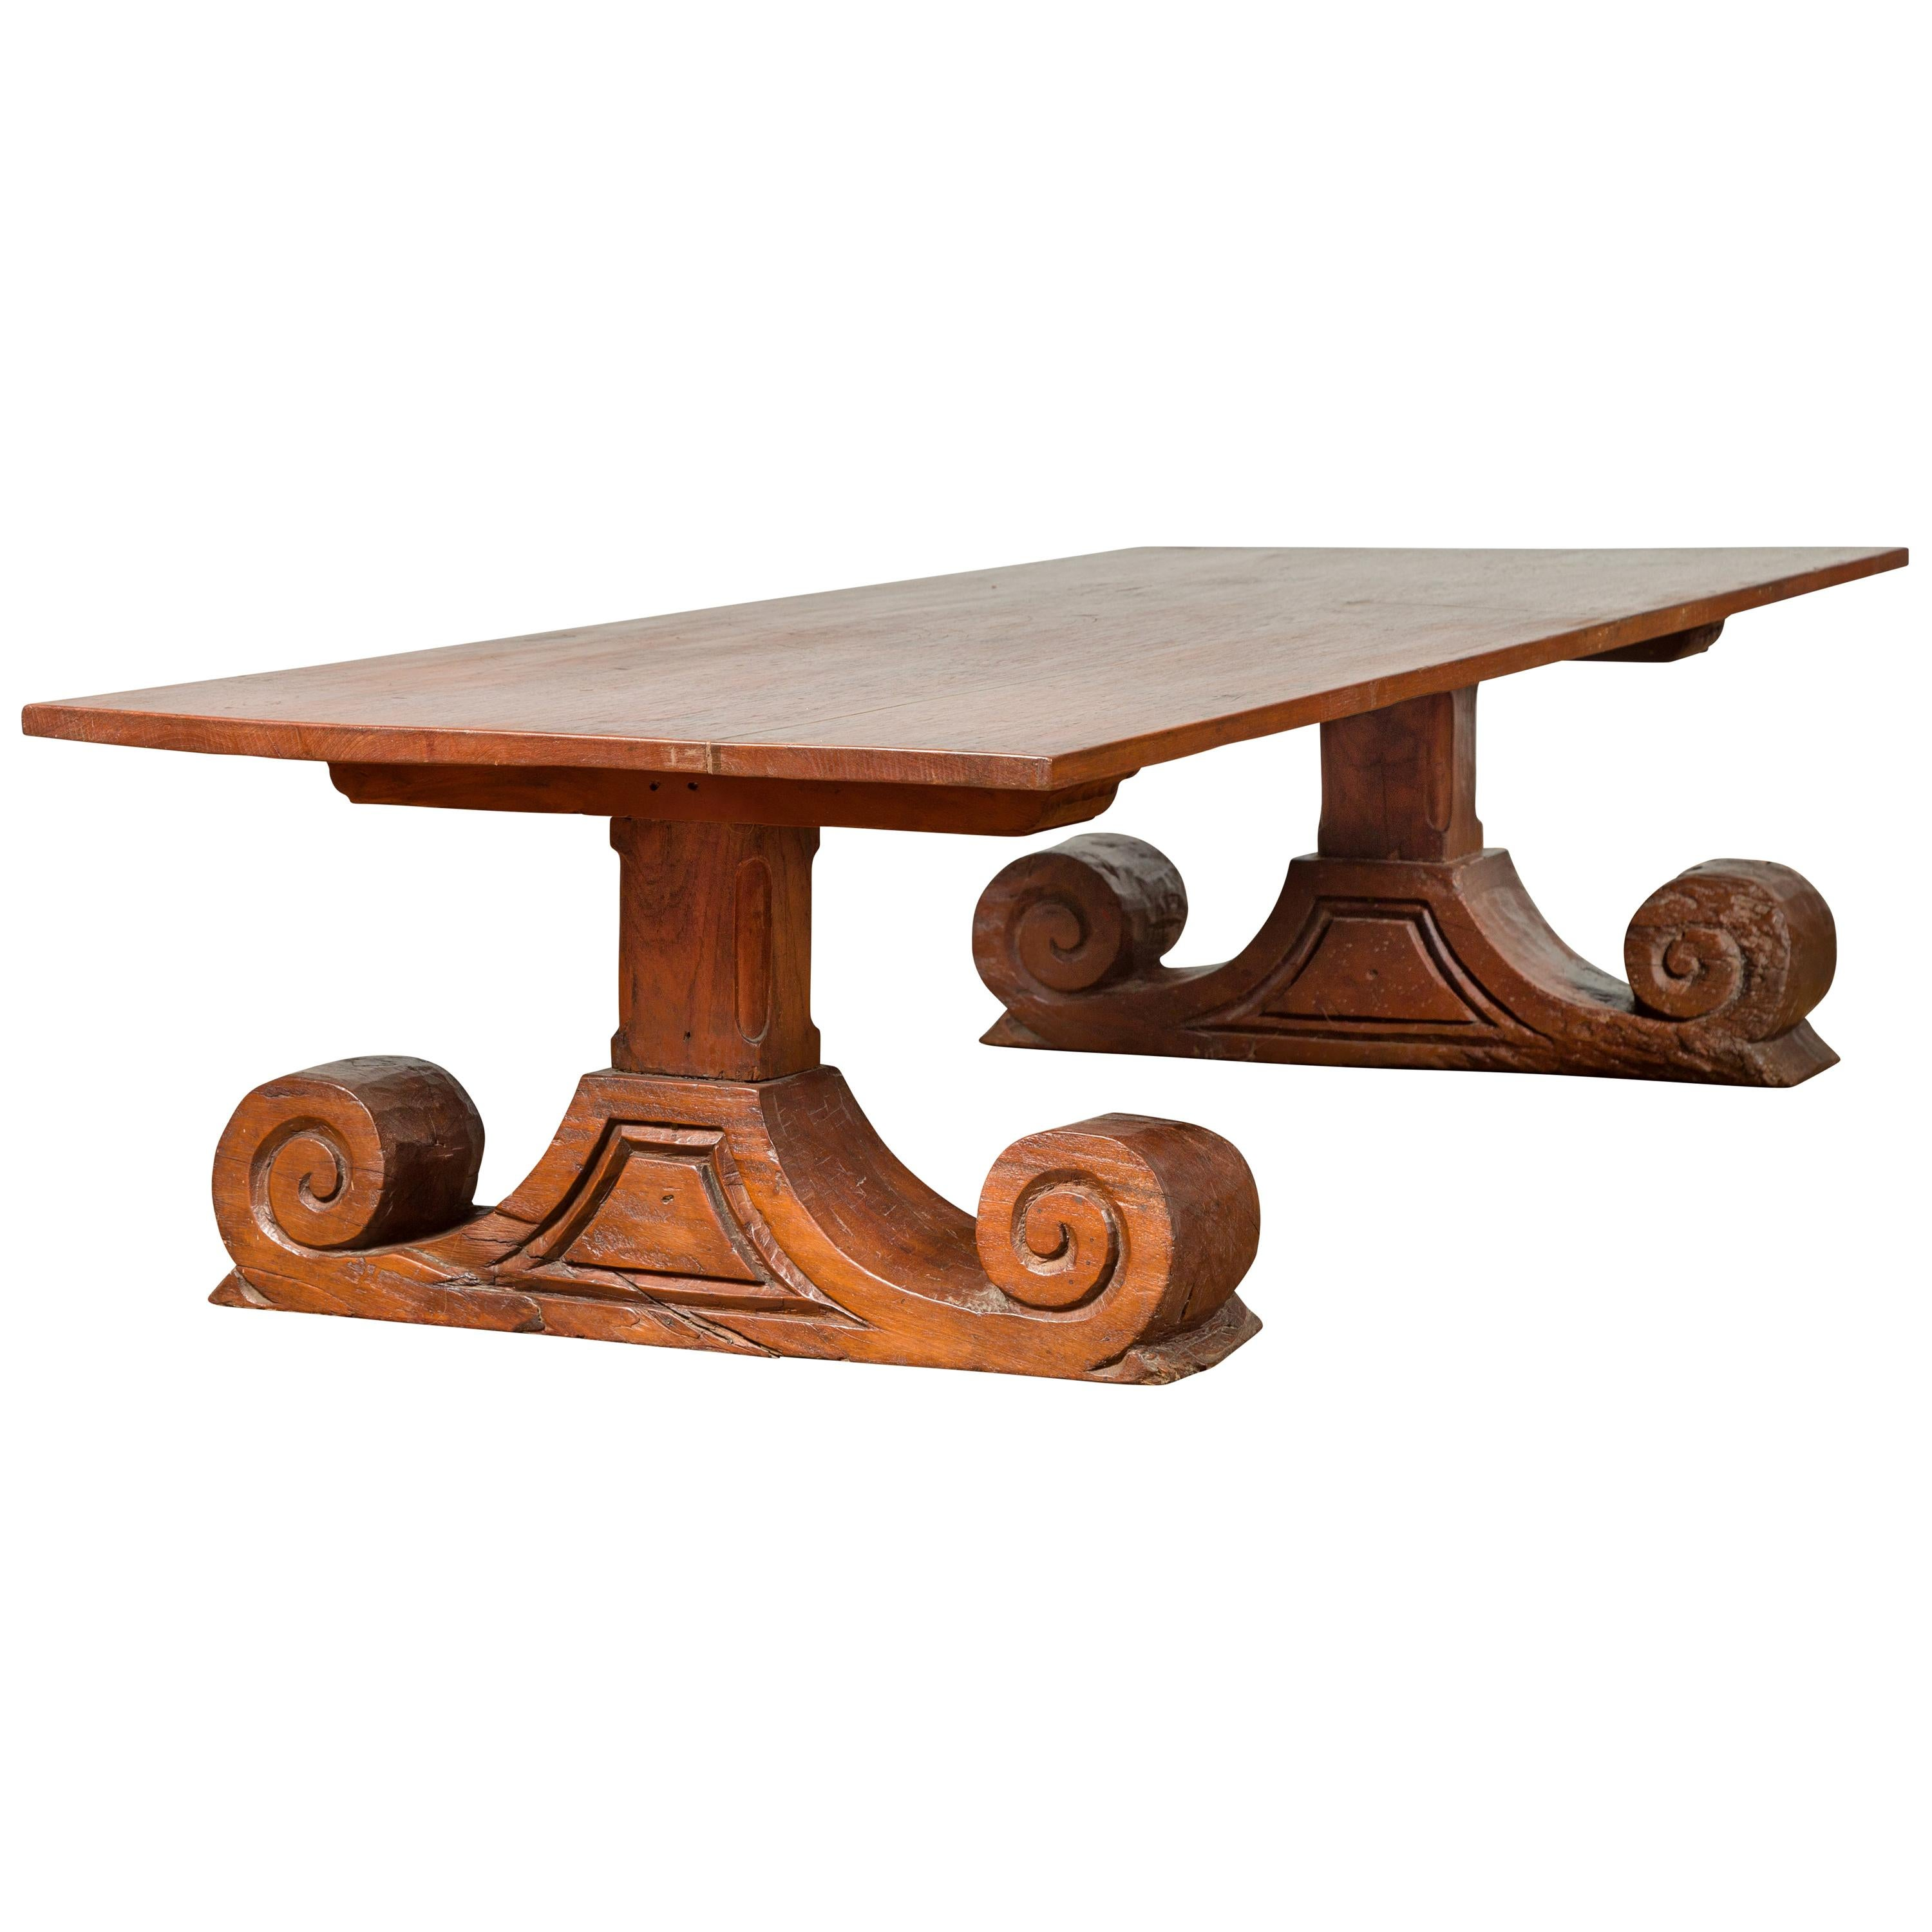 Chinese 19th Century Rustic Elmwood Coffee Table with Large Scrolling Feet